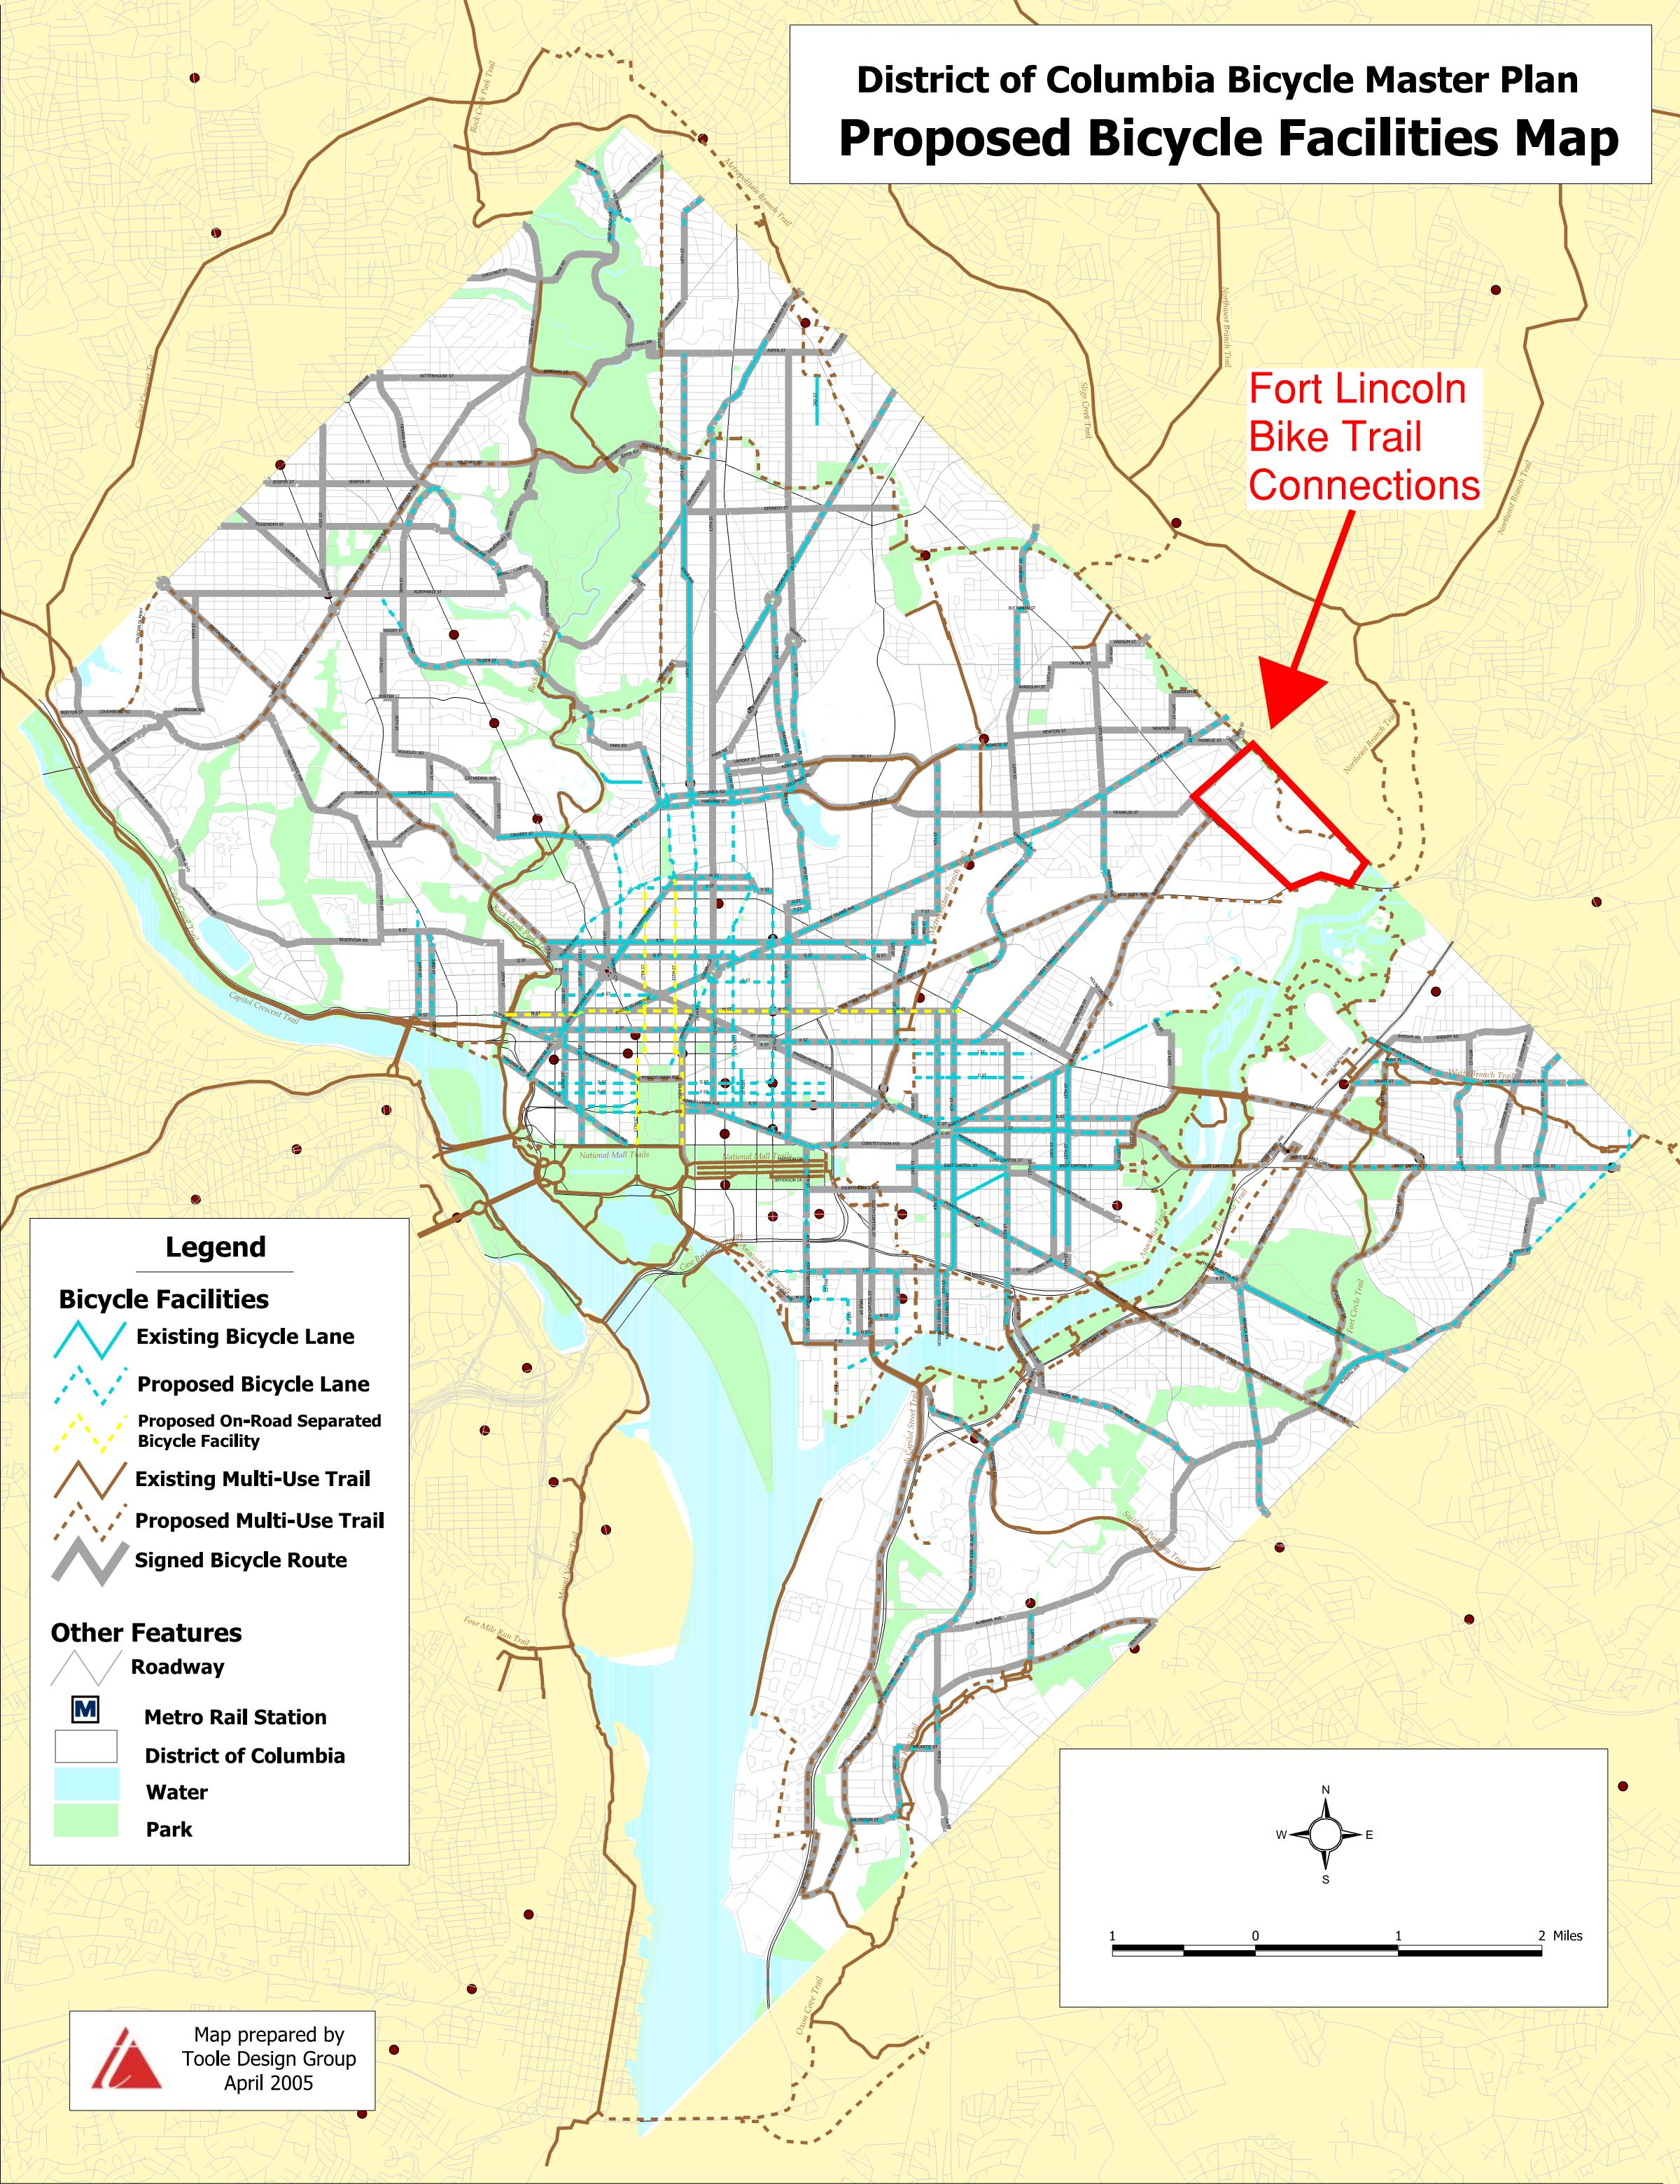 Making Bike Lanes/Trails a Reality in Fort Lincoln